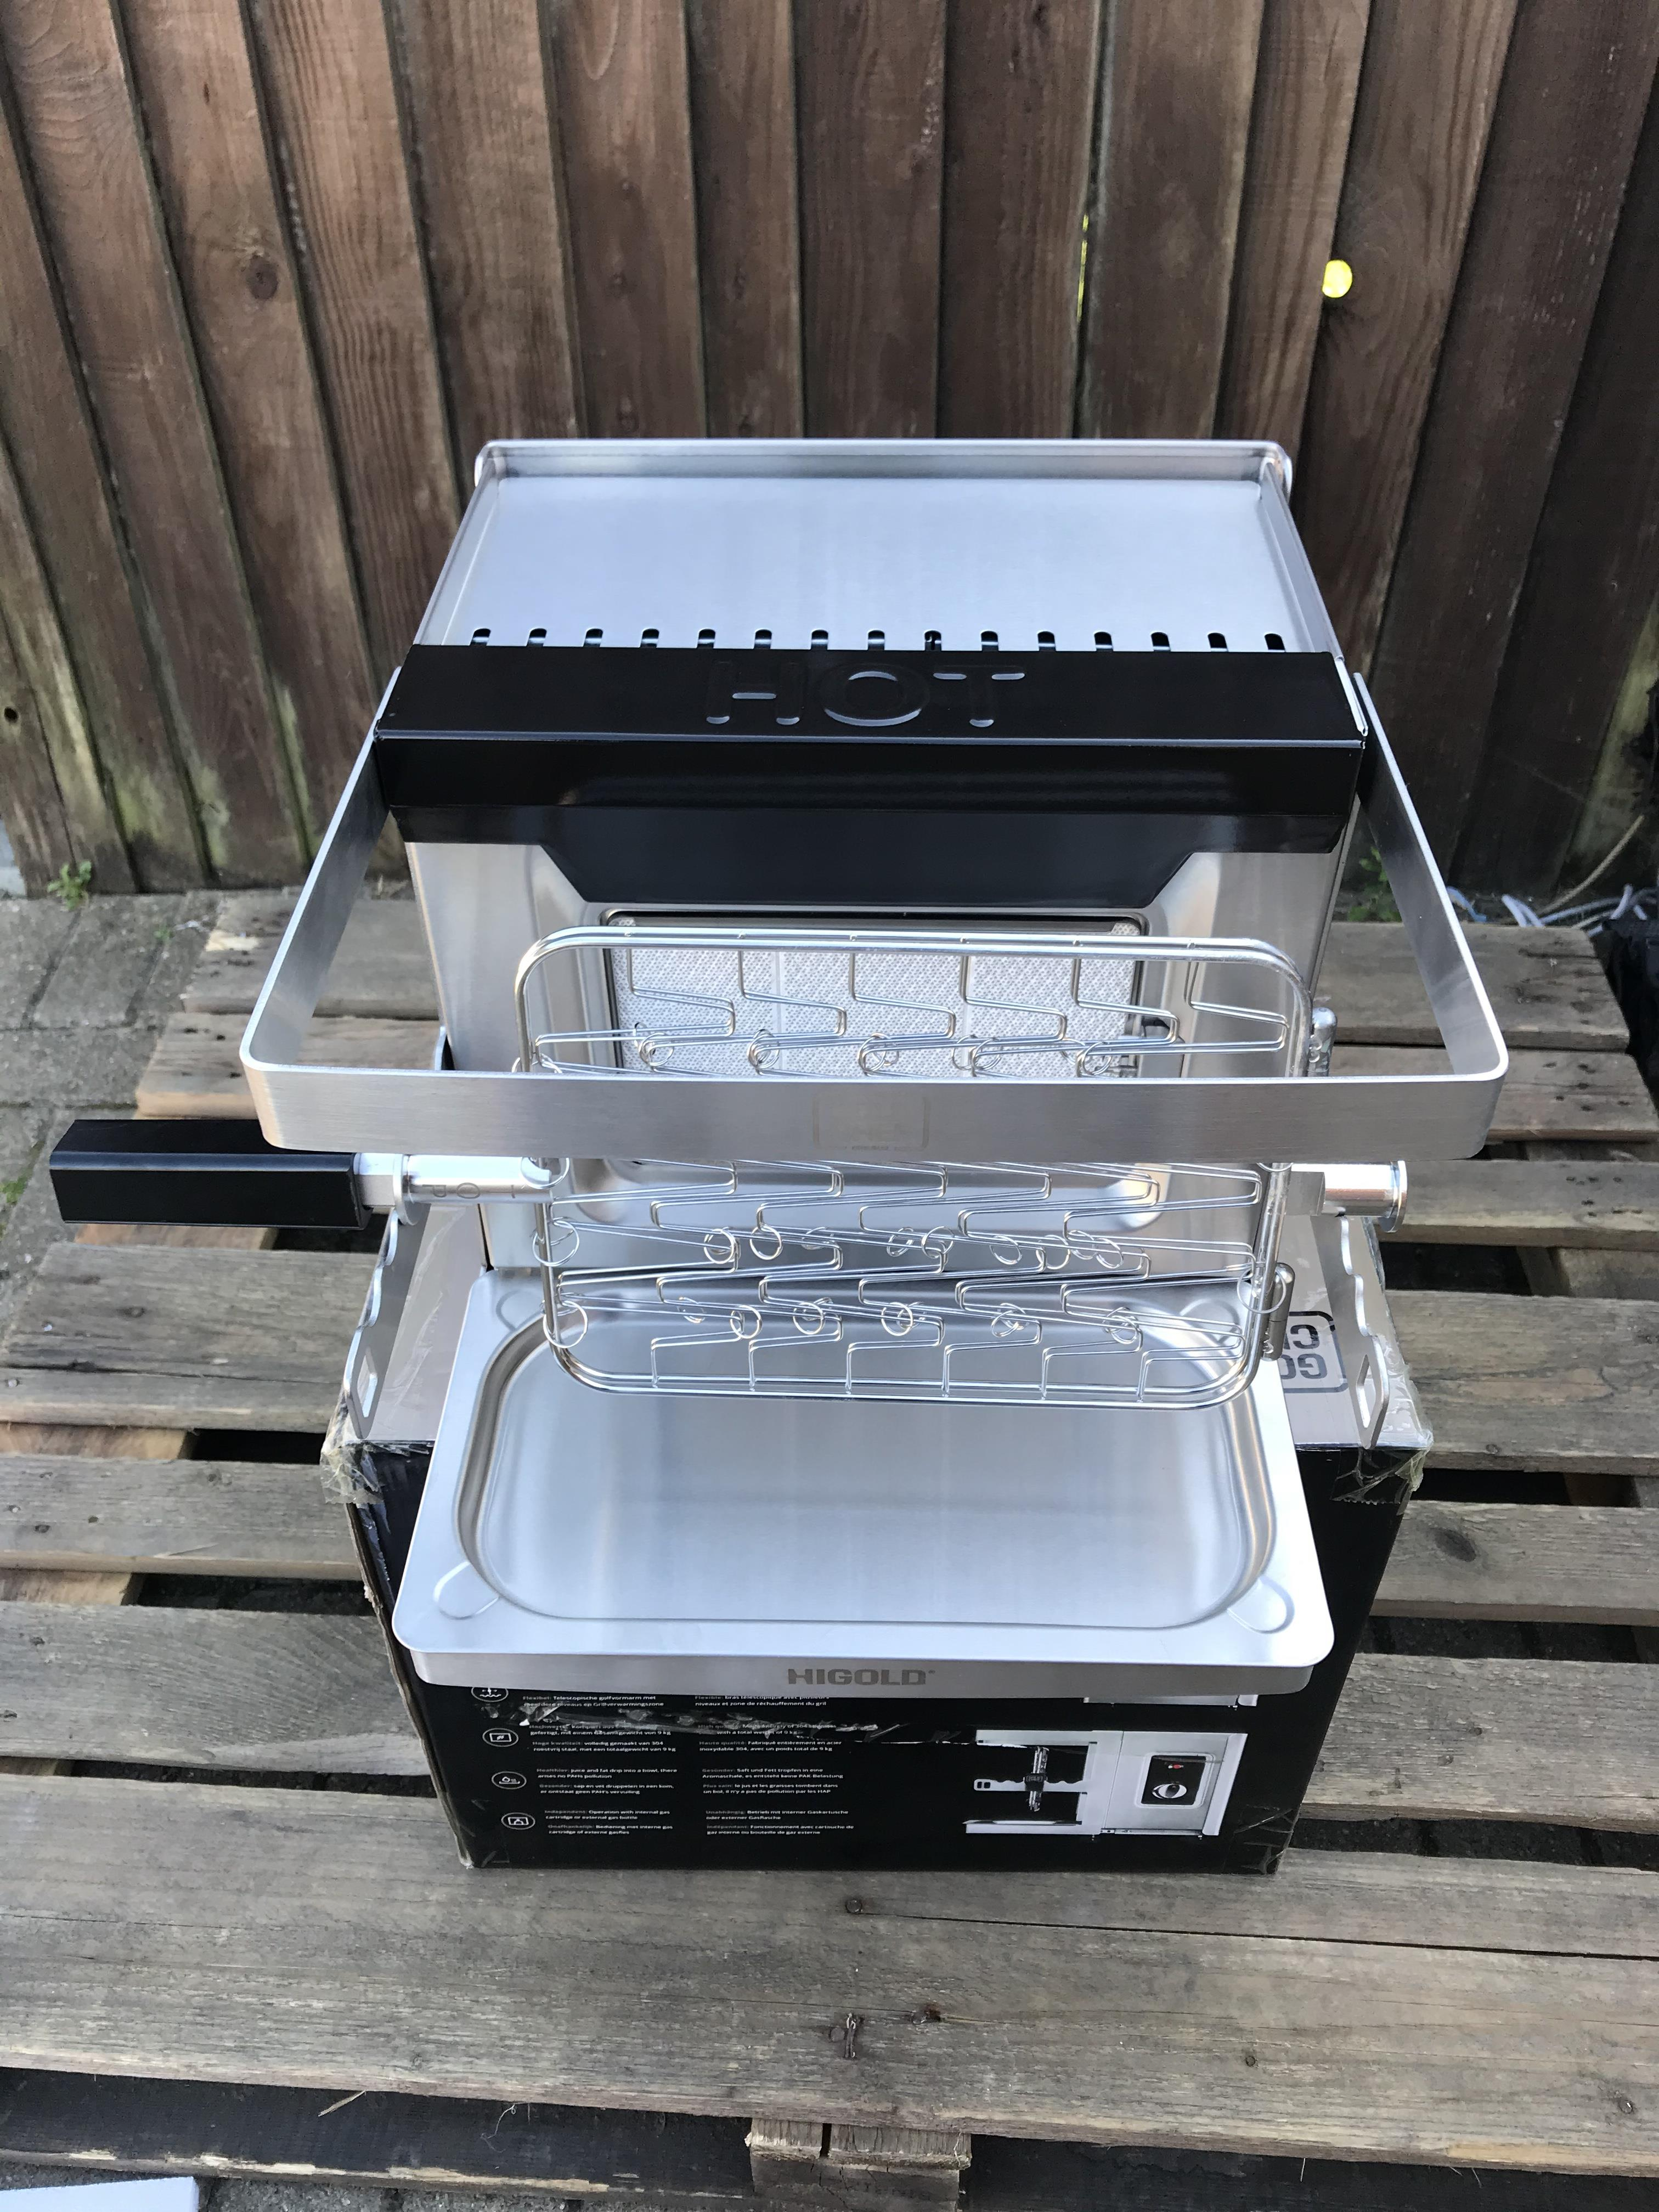 GOLD CHEF TWO 800C ROTISSERIE GRILL - Image 5 of 6